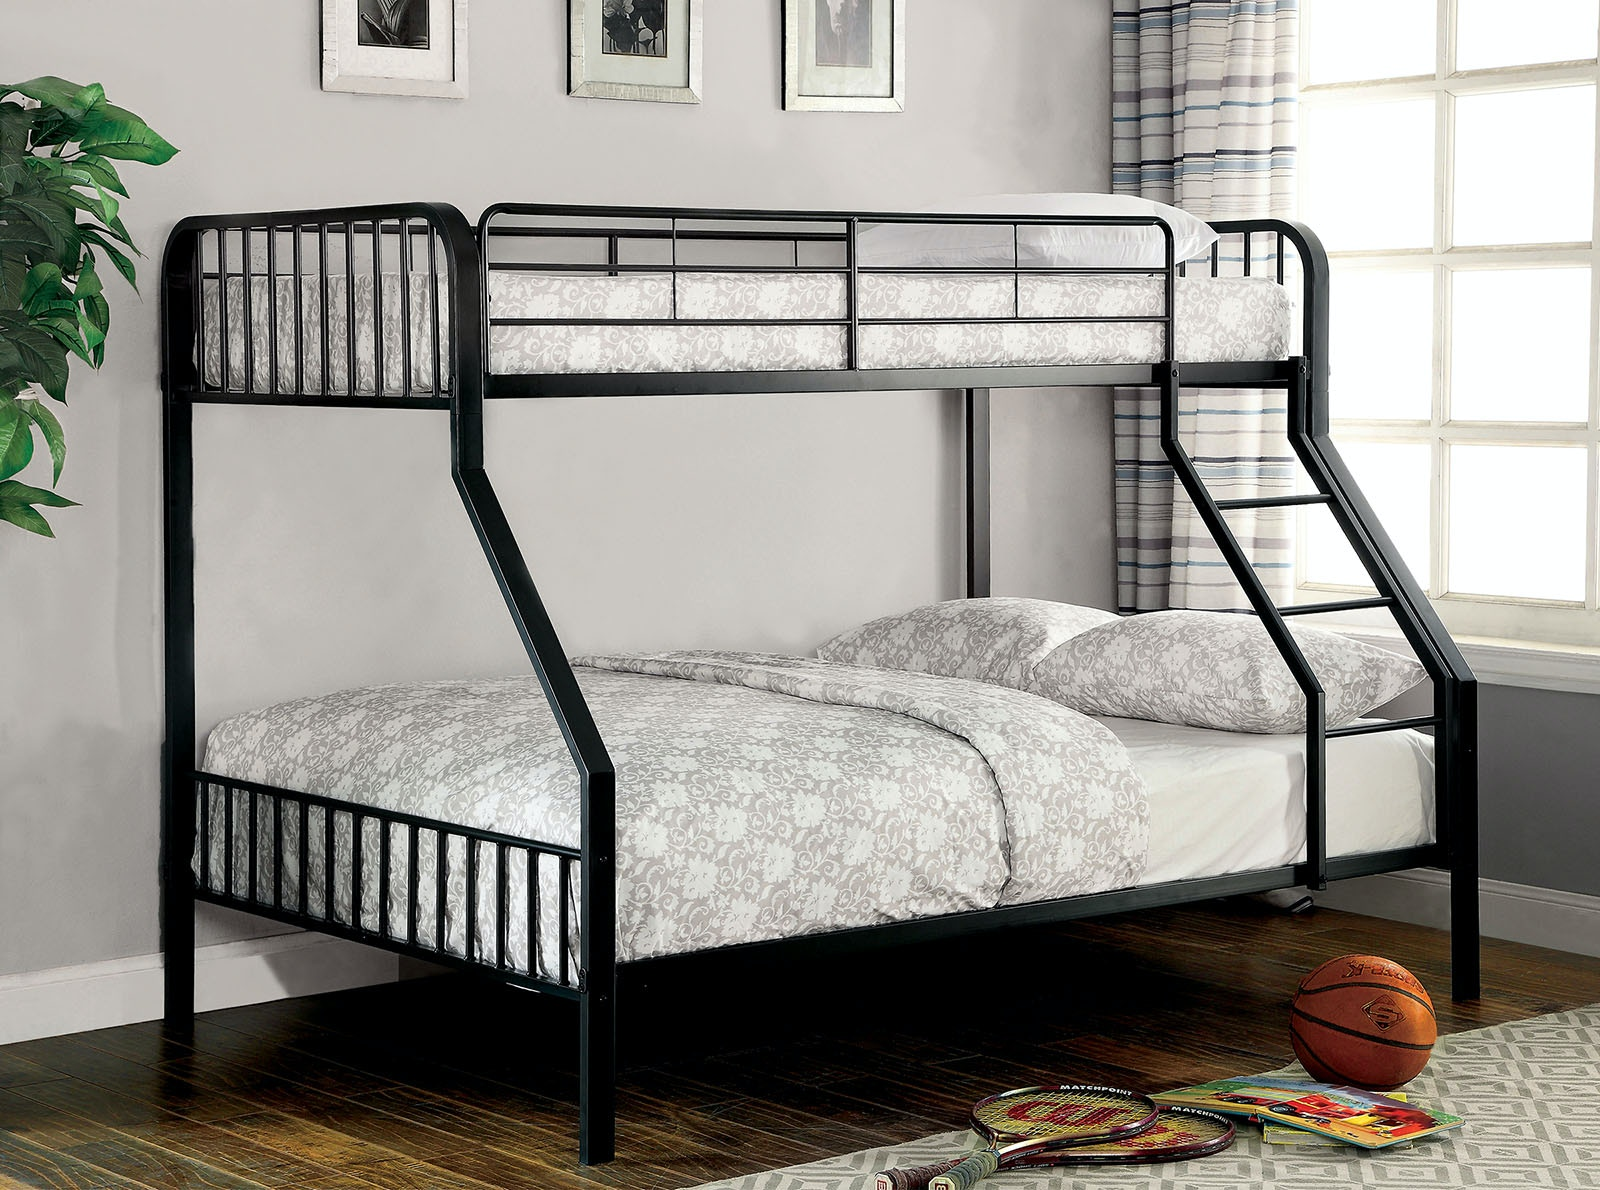 Furniture Of America Bedroom Twin Full Bunk Bed Guardrail Slats Cm